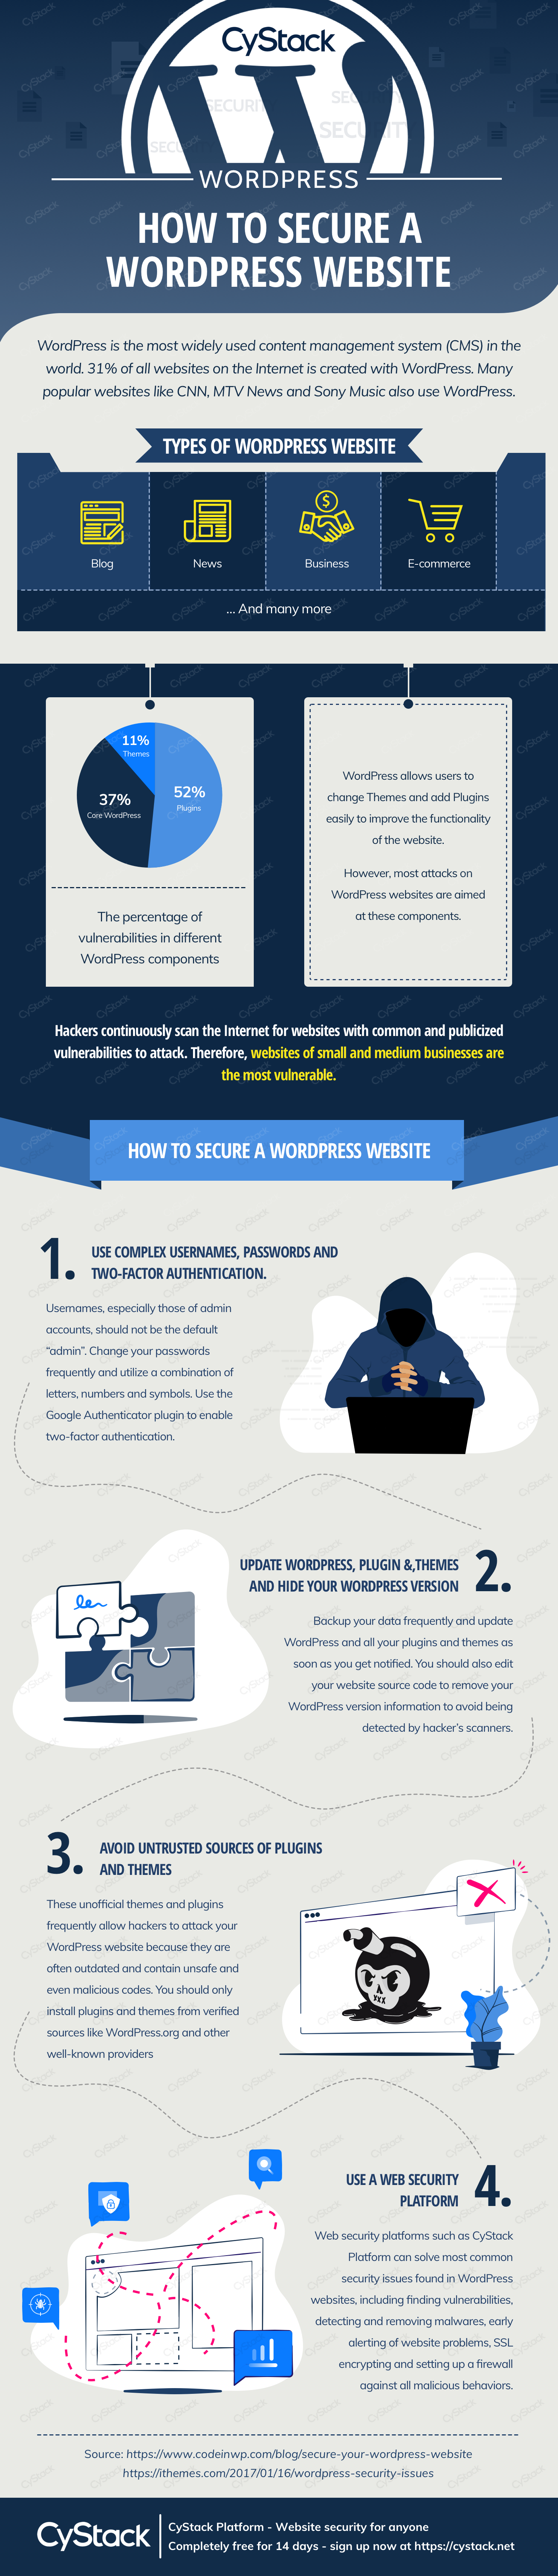 How to secure a WordPress website cystack